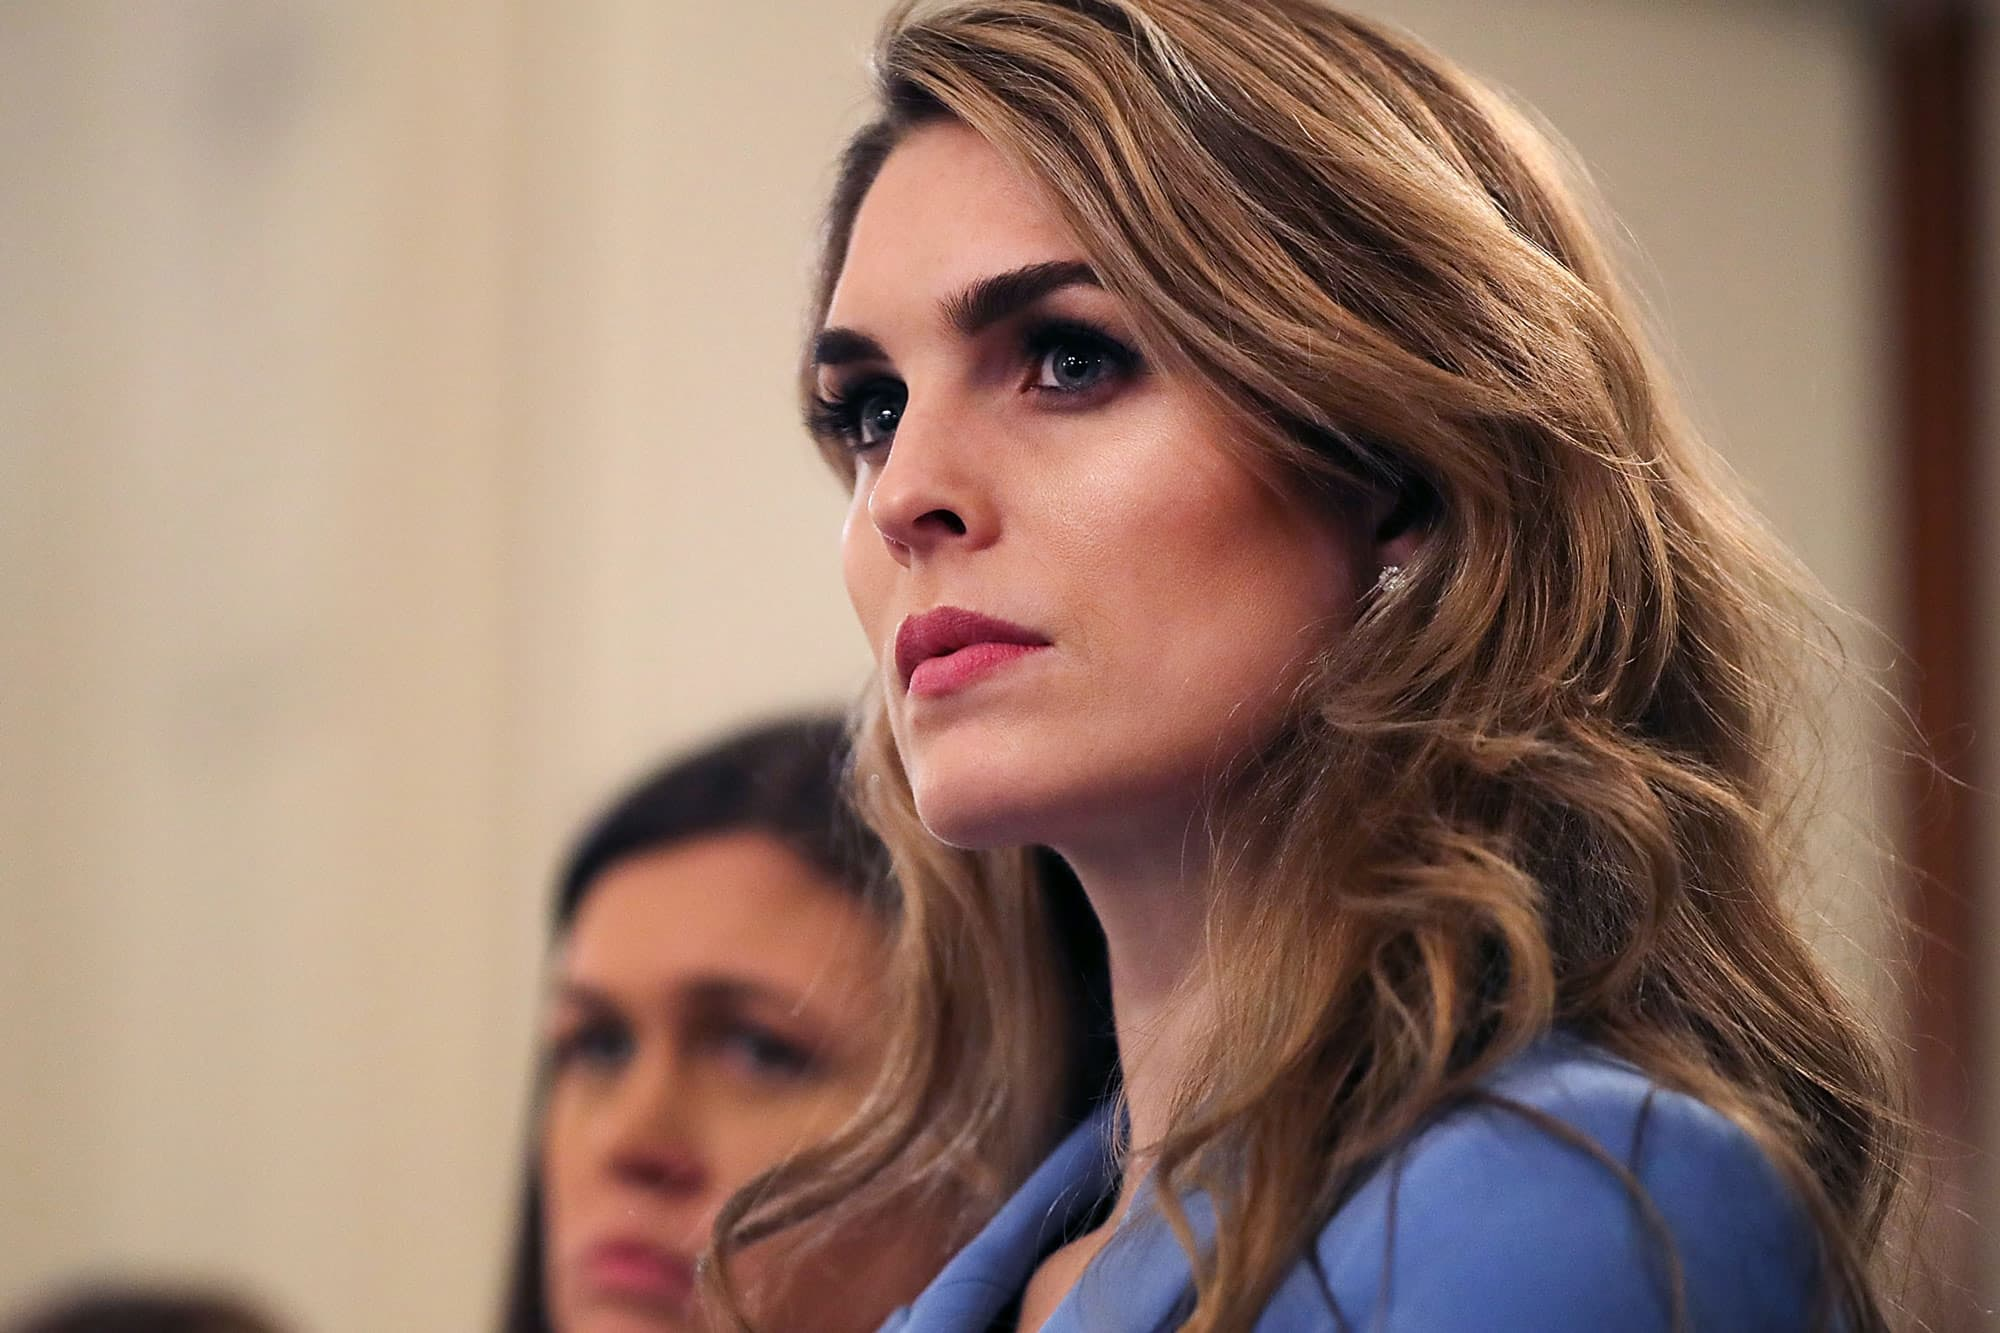 Trump favorite Hope Hicks will return to the White House as aide to Jared Kushner